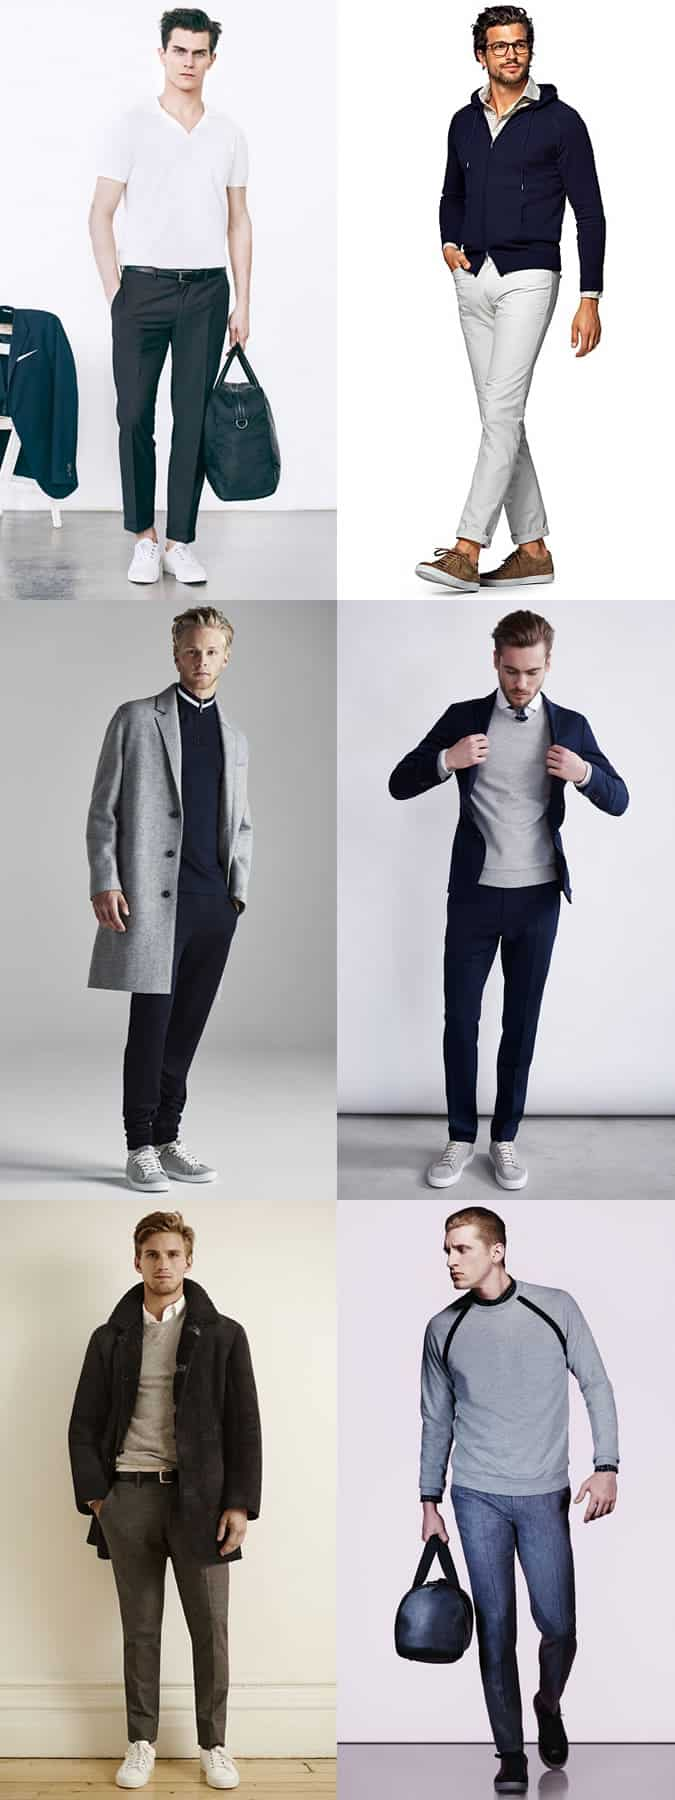 Men's Luxe/Dressed Up Sportswear Outfit Inspiration Lookbook